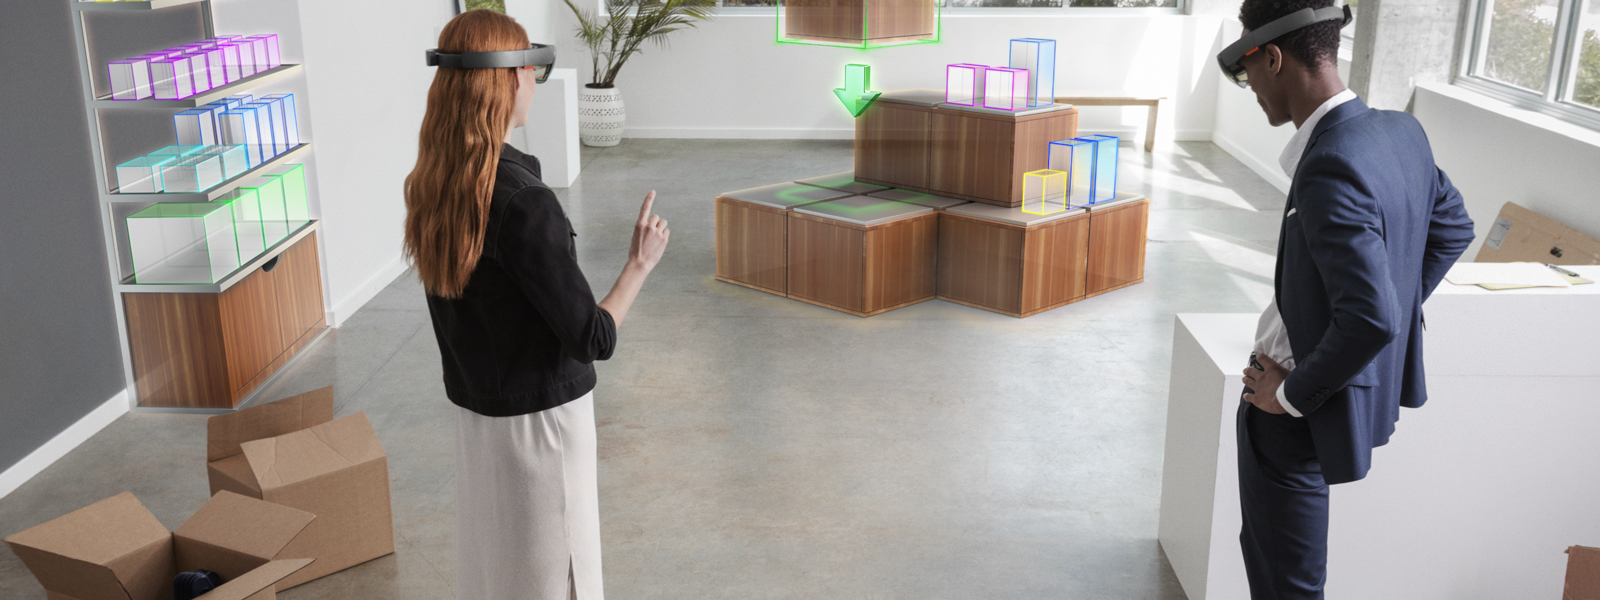 Using HoloLens to plan retail space in mixed reality